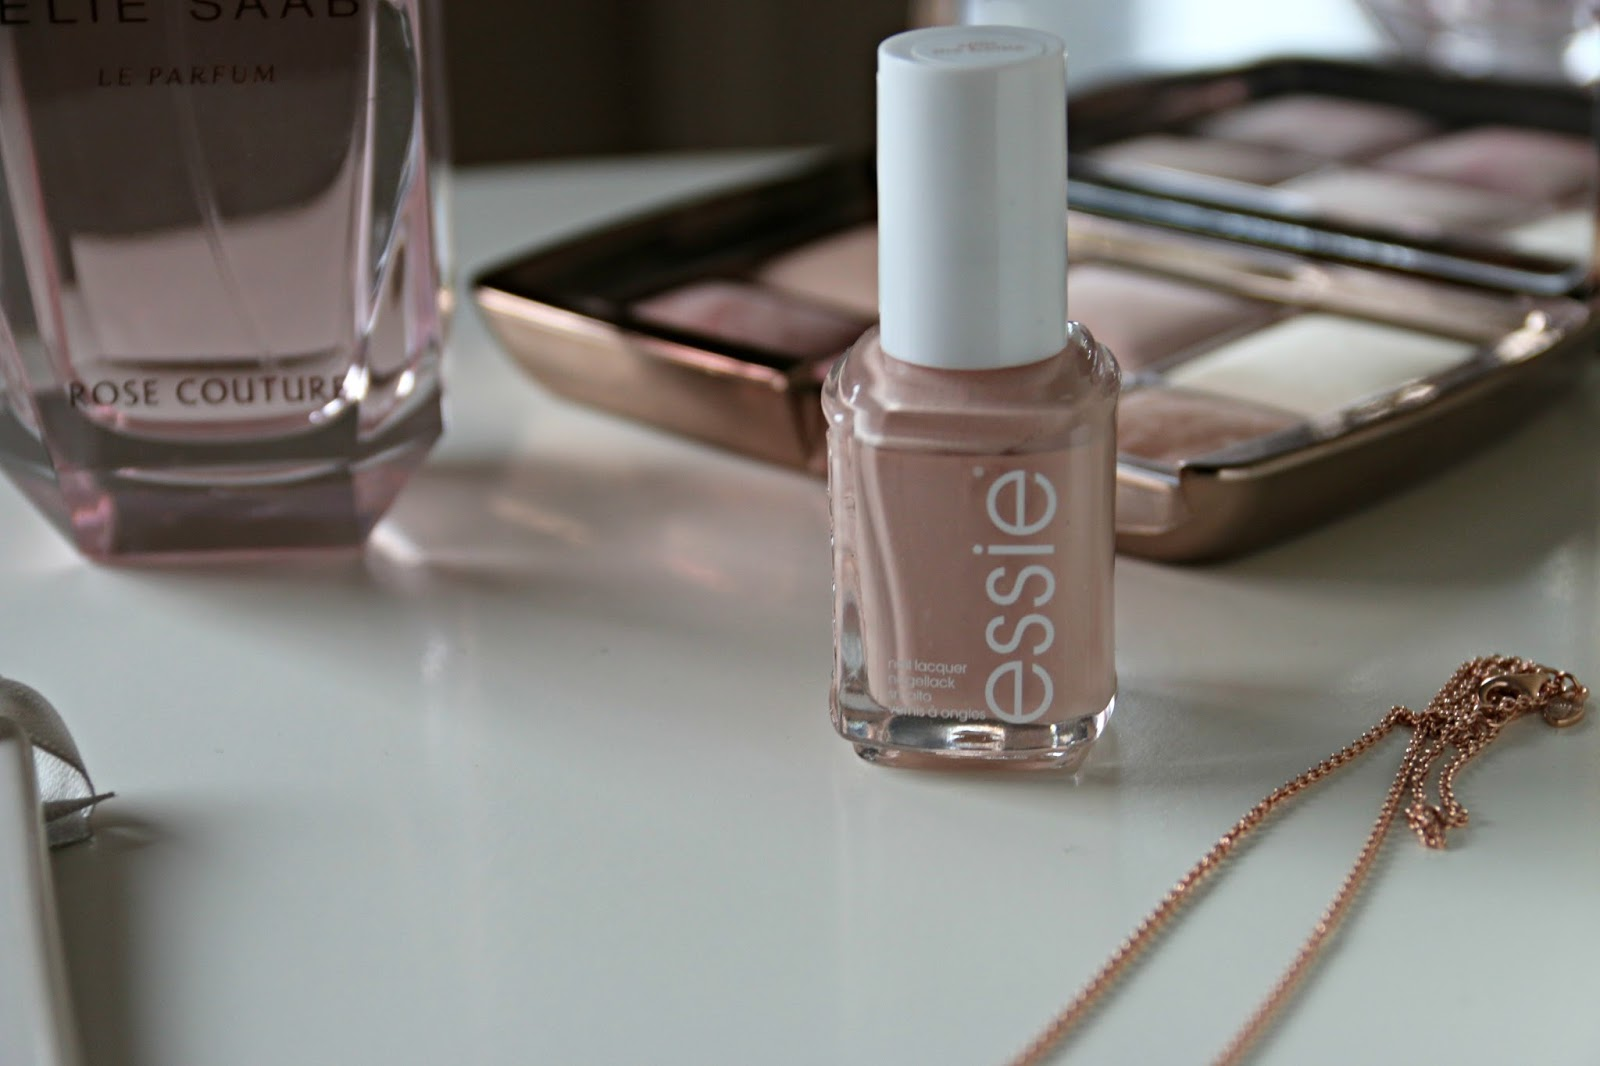 Essie nail polish in Not Just a Pretty Face Image